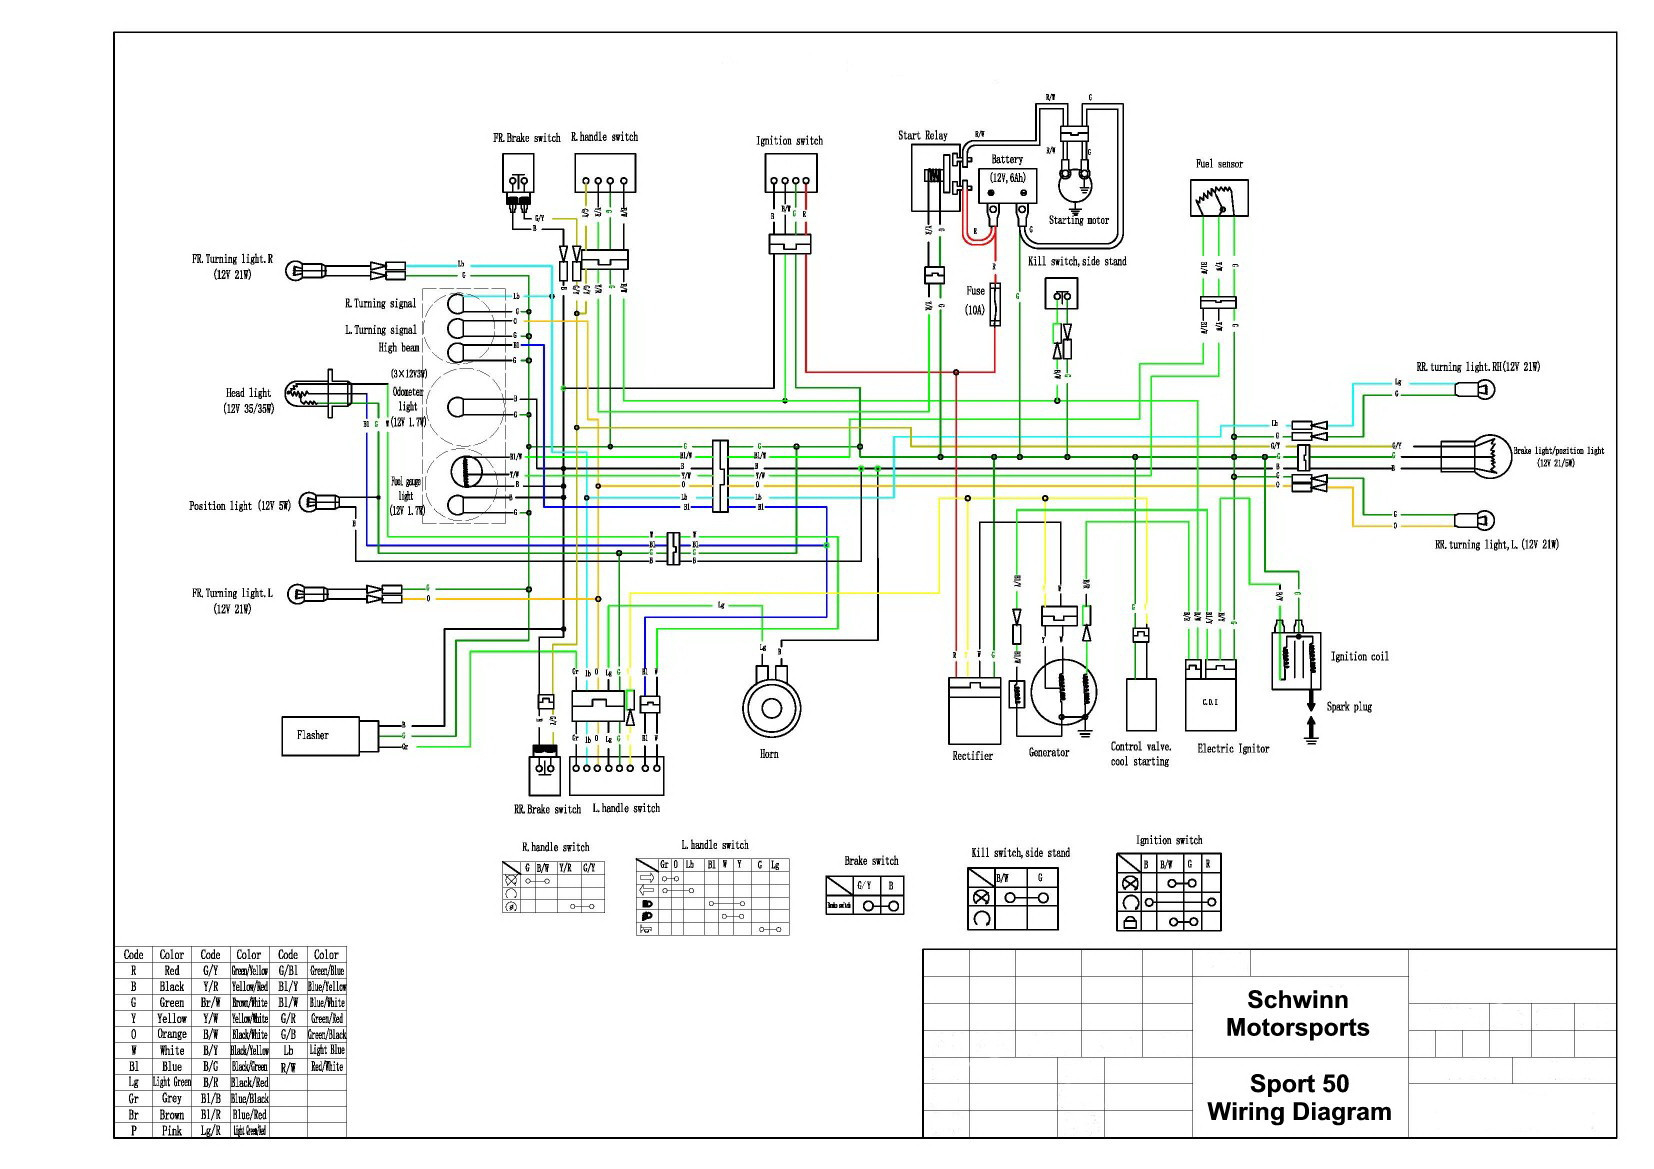 DIAGRAM] Vip 50cc Scooter Wiring Diagram Pictures FULL Version HD Quality  Diagram Pictures - WIKIDIAGRAMS.SIGGY2000.DEwikidiagrams.siggy2000.de